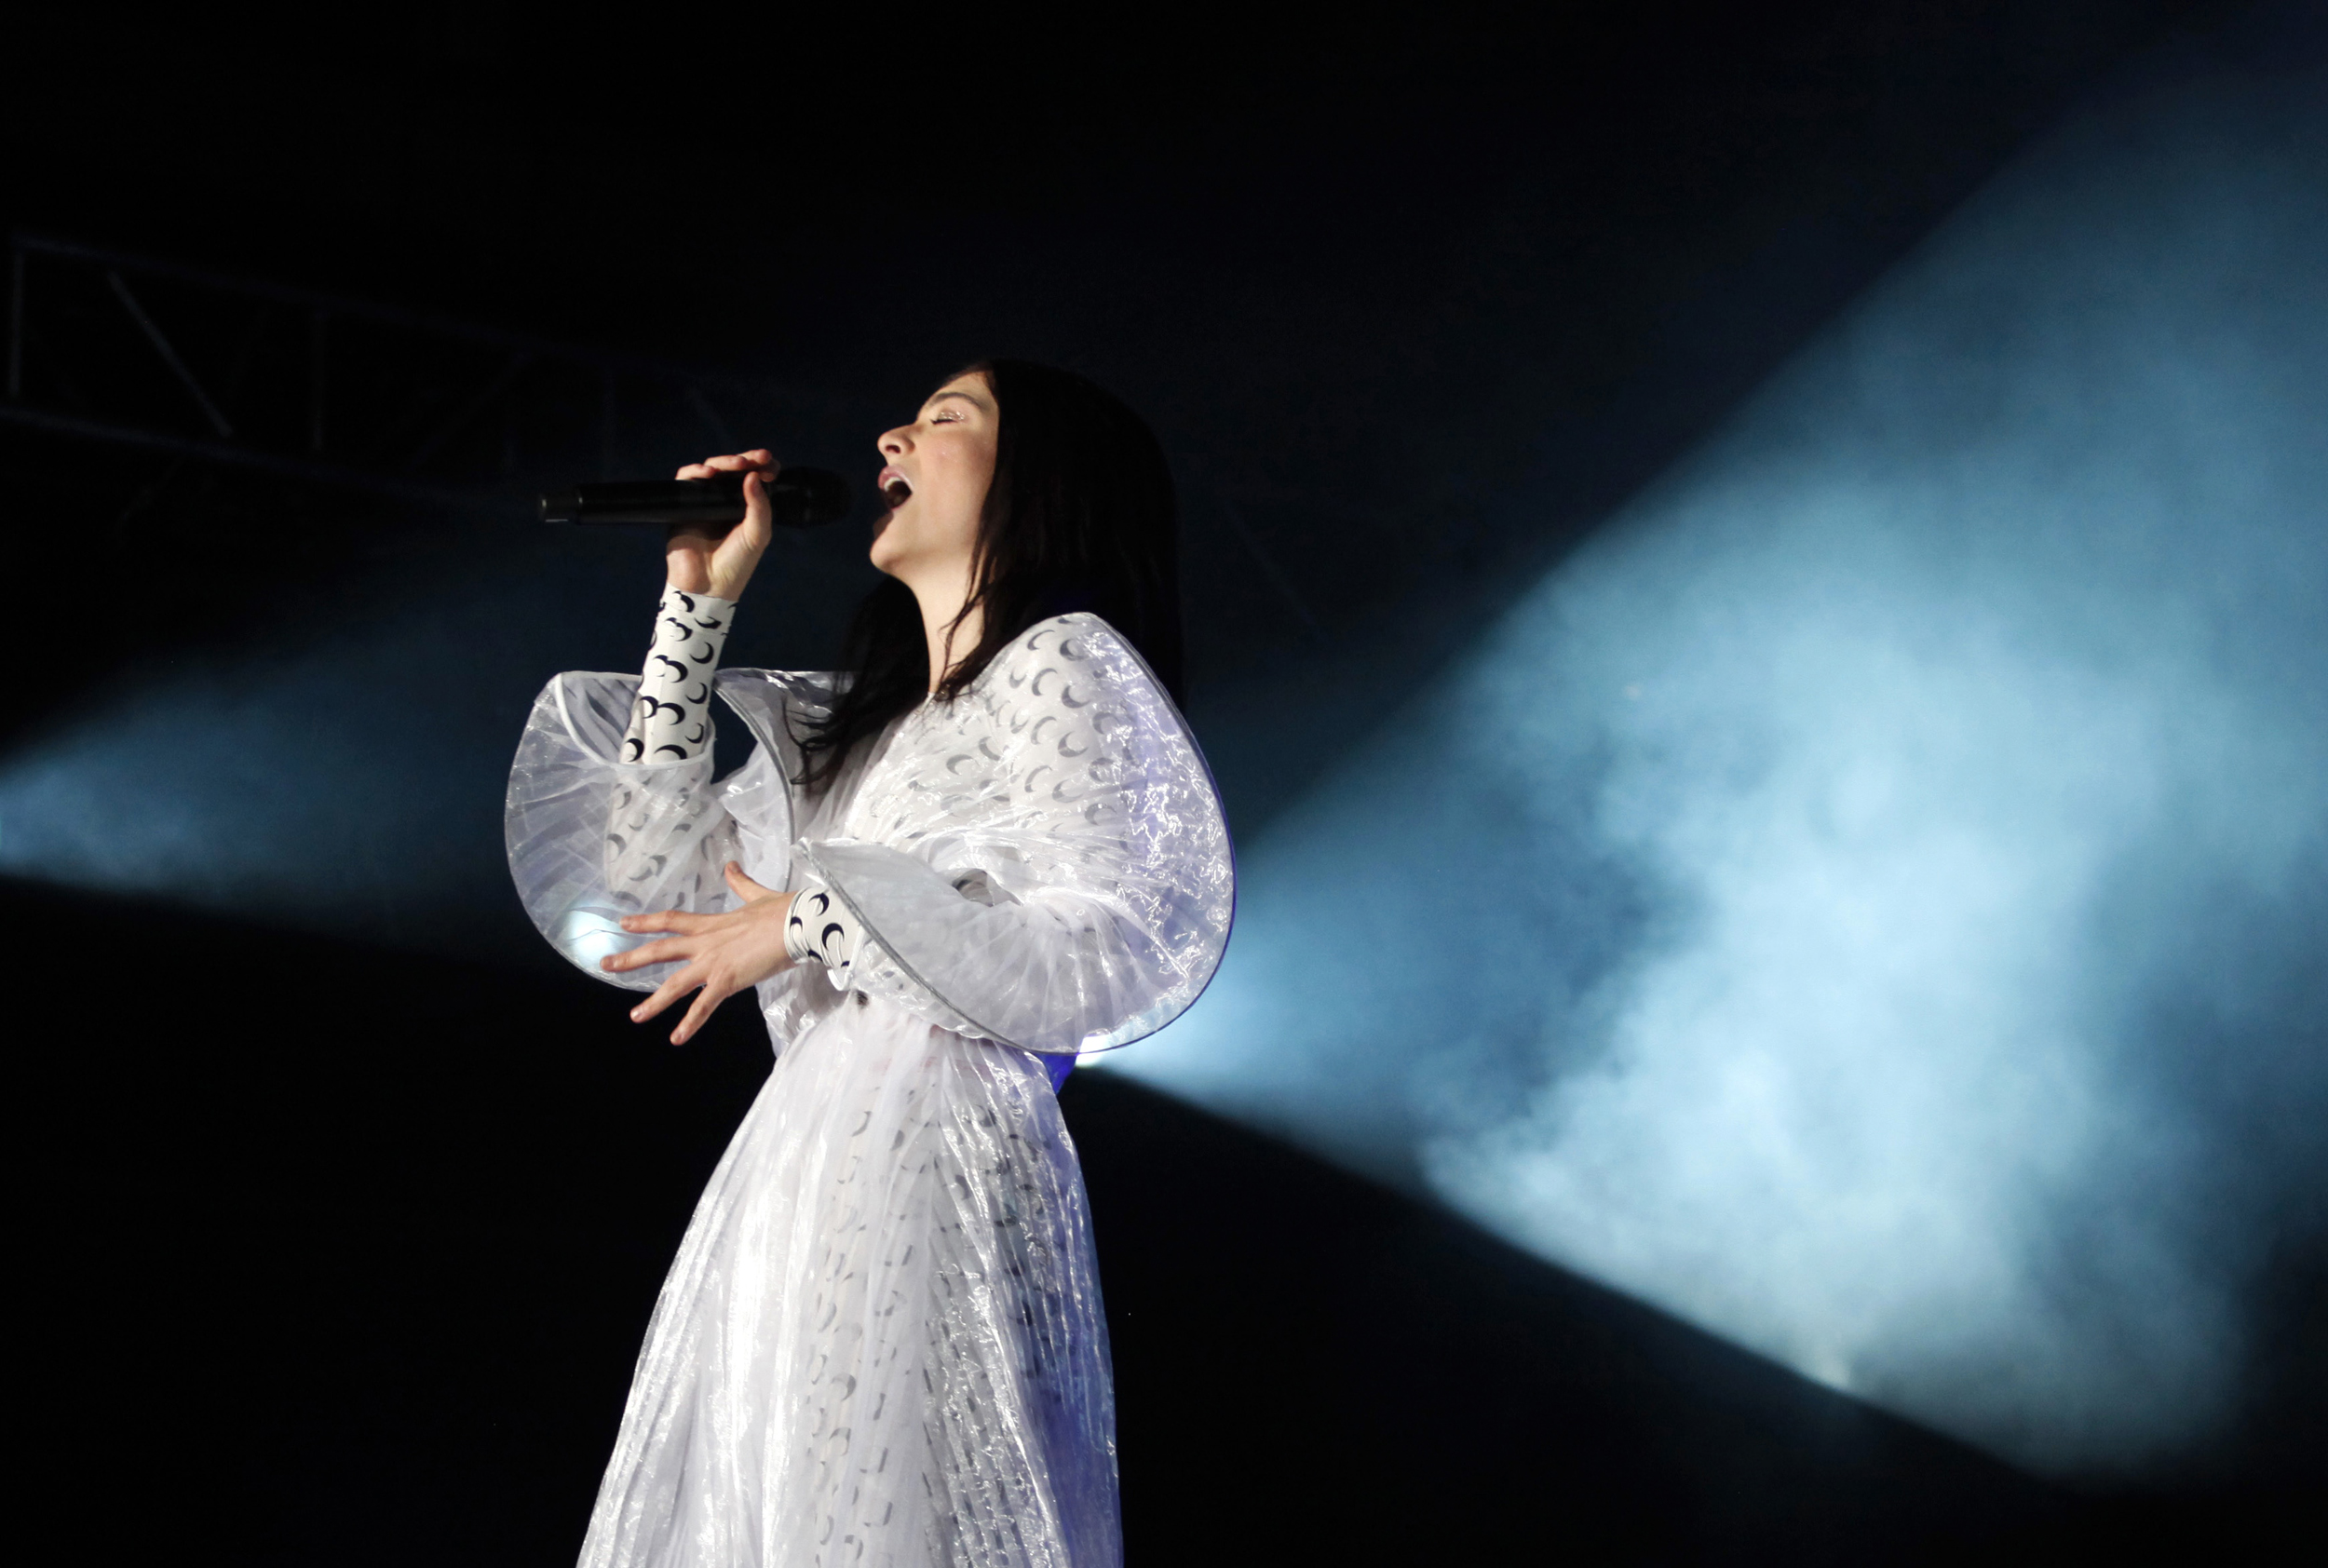 She wants to share Māori with the world. So she recorded Lorde's new album.